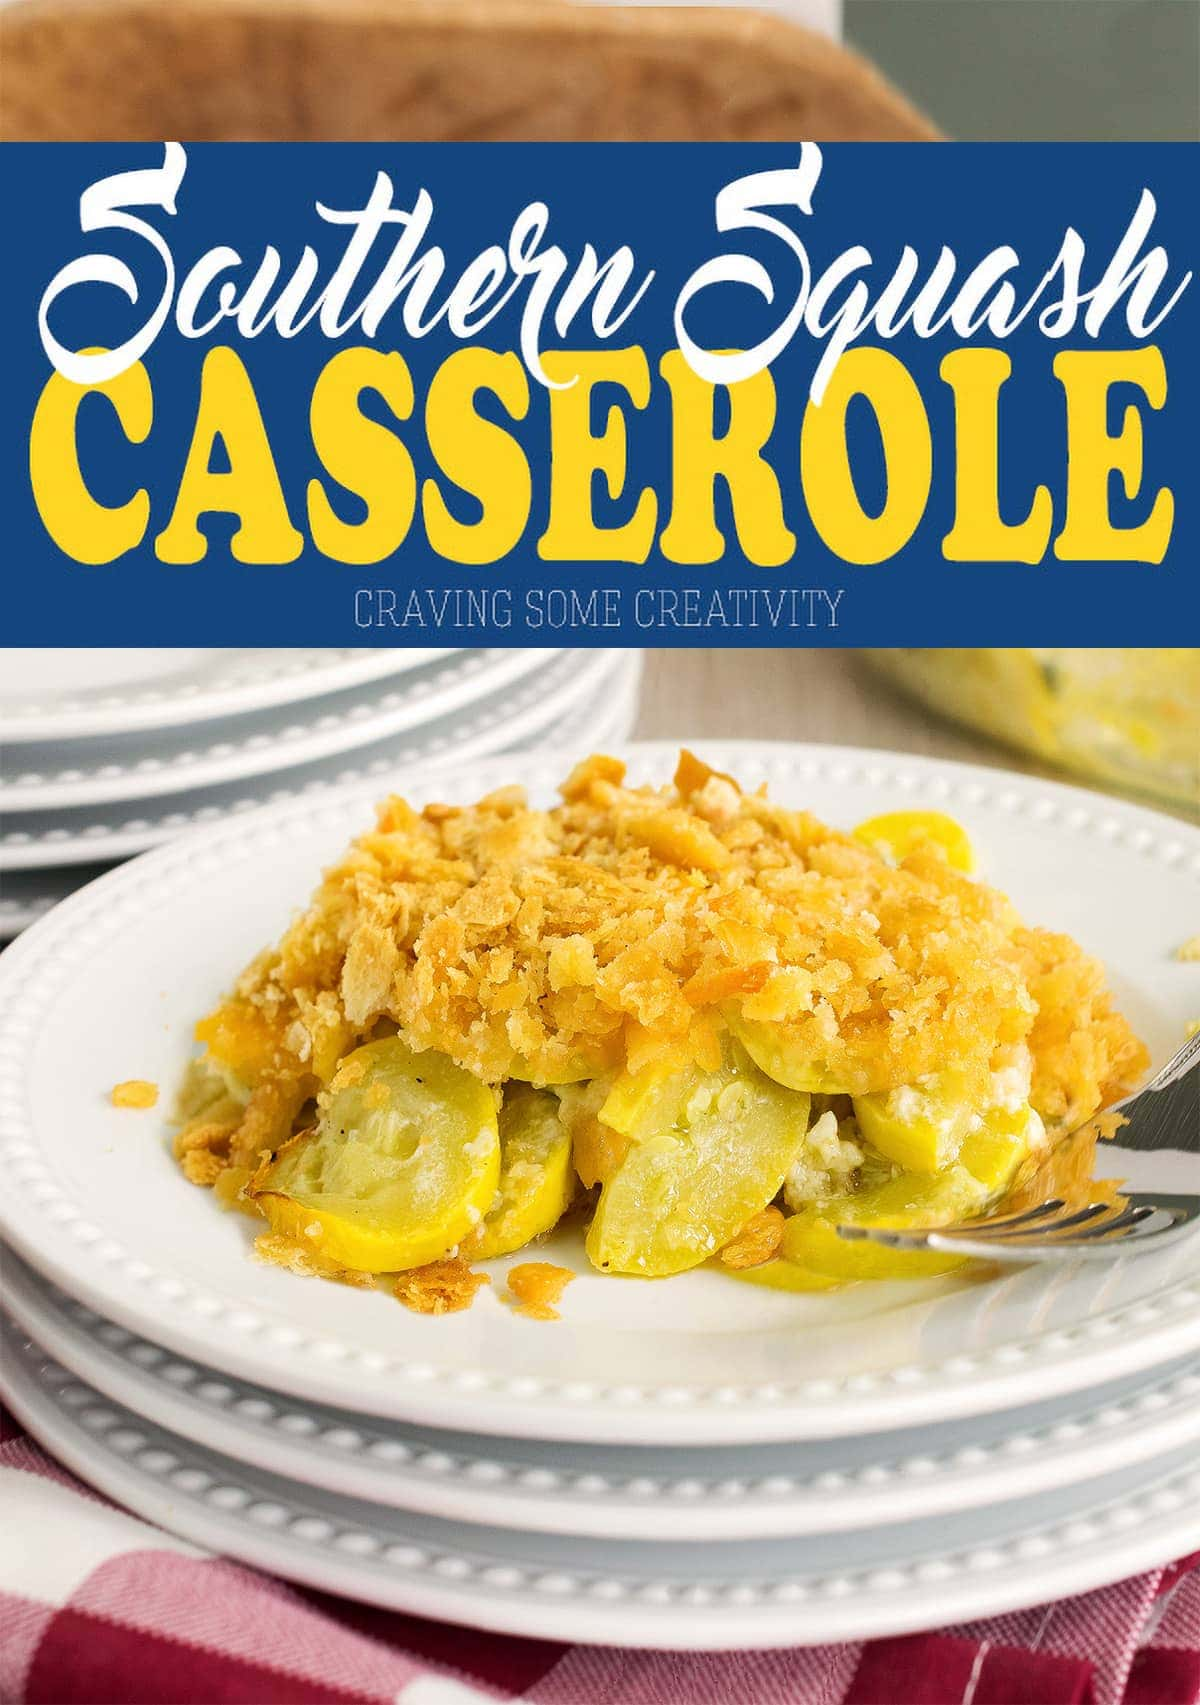 This buttery and delicious southern Squash Casserole is perfect for holidays, bbqs, and any get together you have planned. The crushed ritz cracker topping is perfect with the sweet and tender yellow squash.